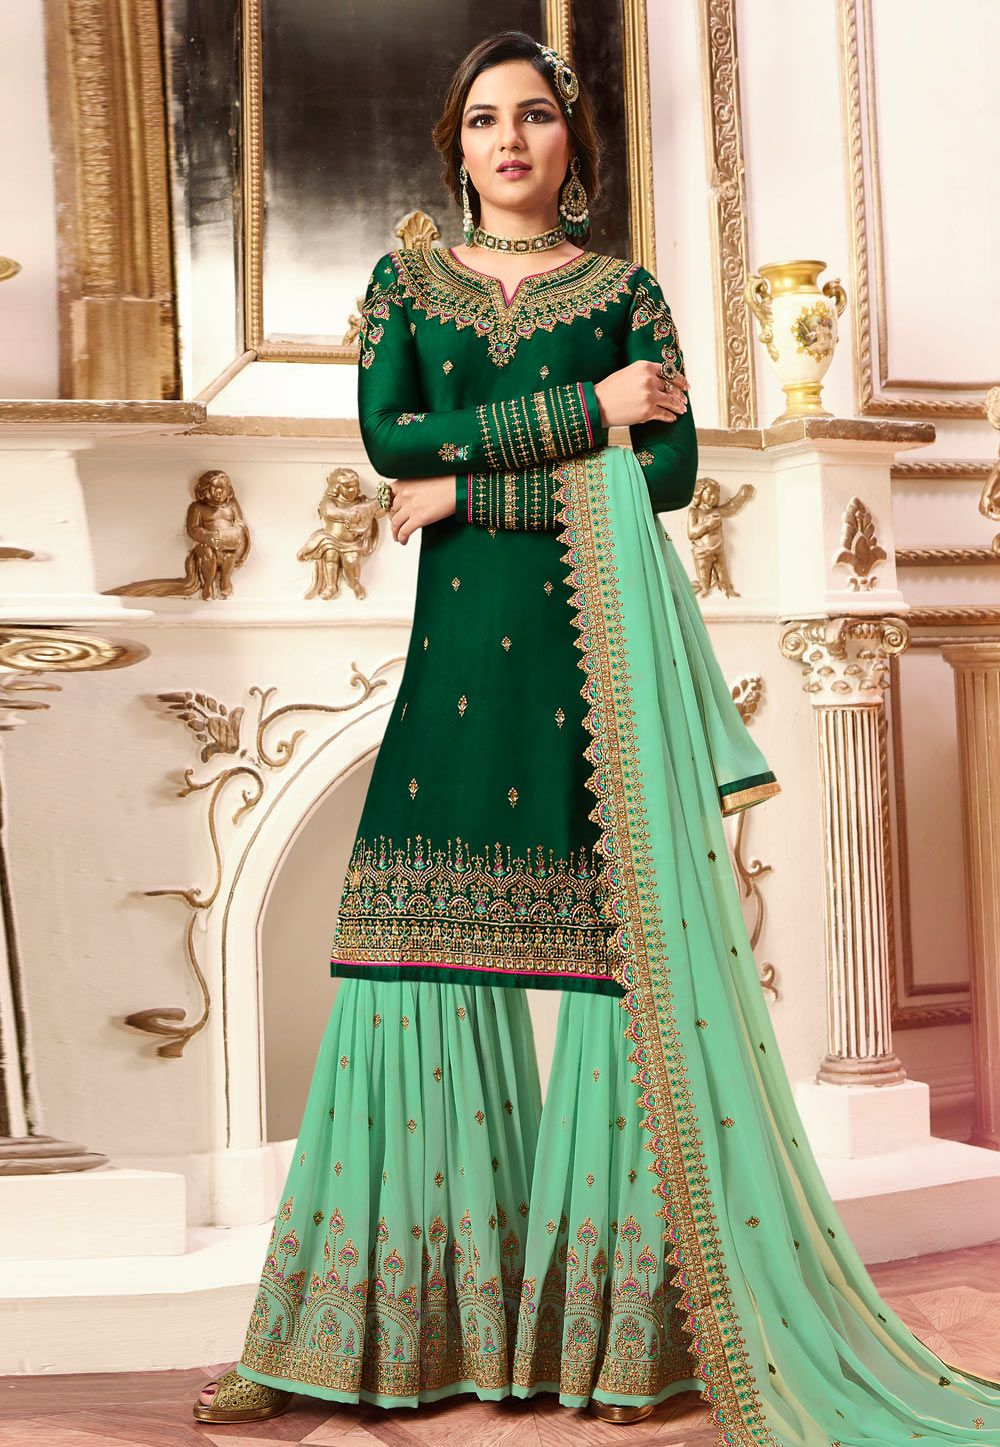 d9d40611eb Buy Green Satin Sharara Suit 164299 online at lowest price from huge  collection of salwar kameez at Indianclothstore.com.